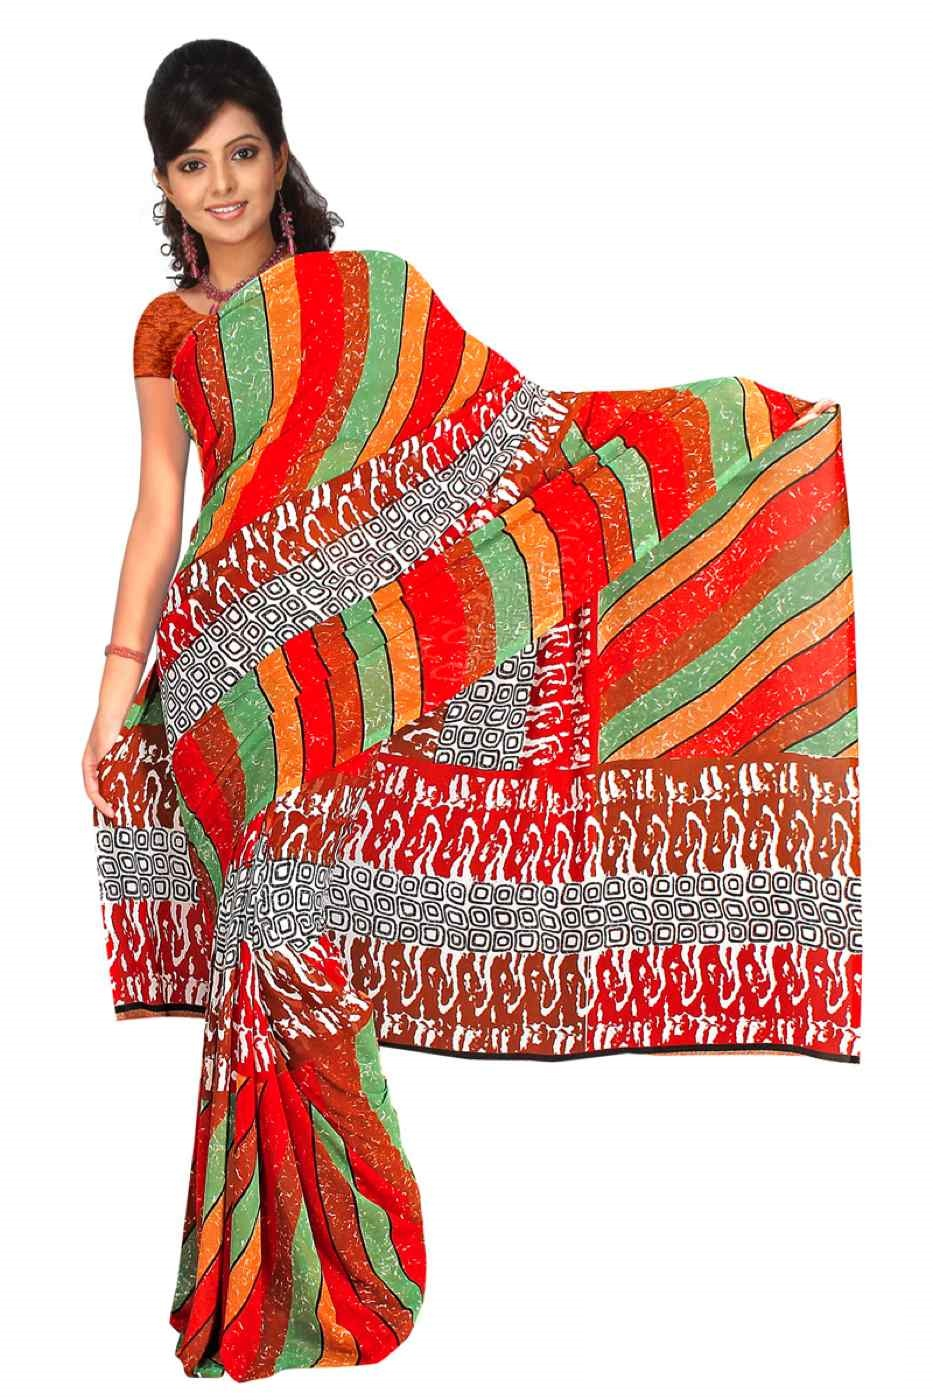 Indian Selections Eila Georgette Printed Casual Saree Sari Bellydance fabric at Sears.com